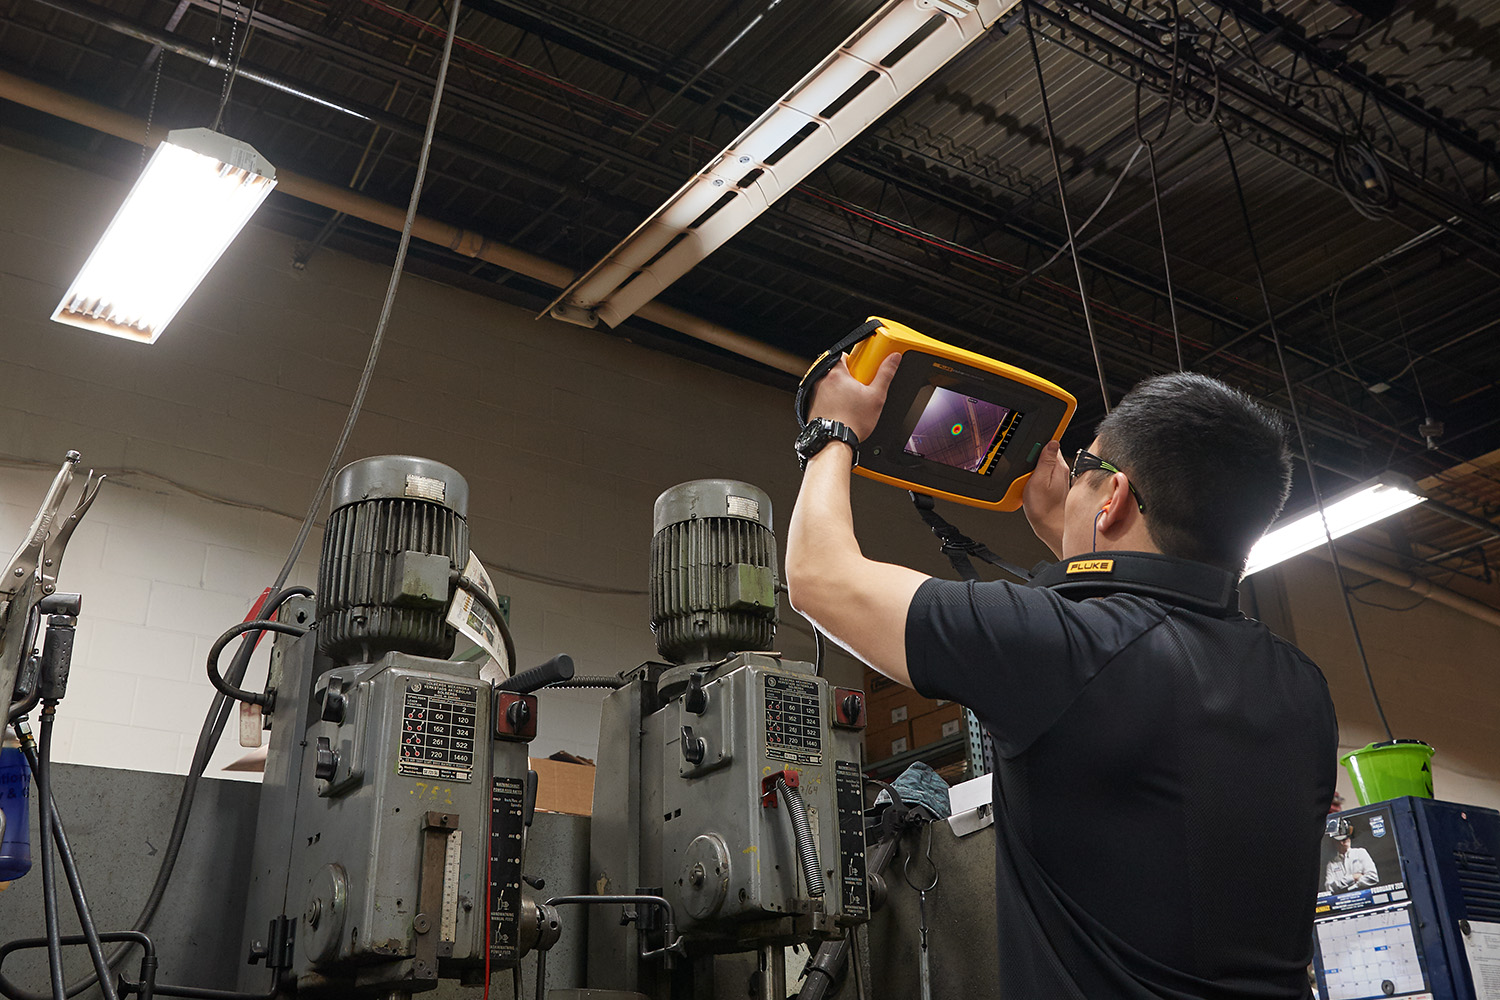 Inspecting compressed air lines with the Fluke ii900 Sonic Industrial Imager